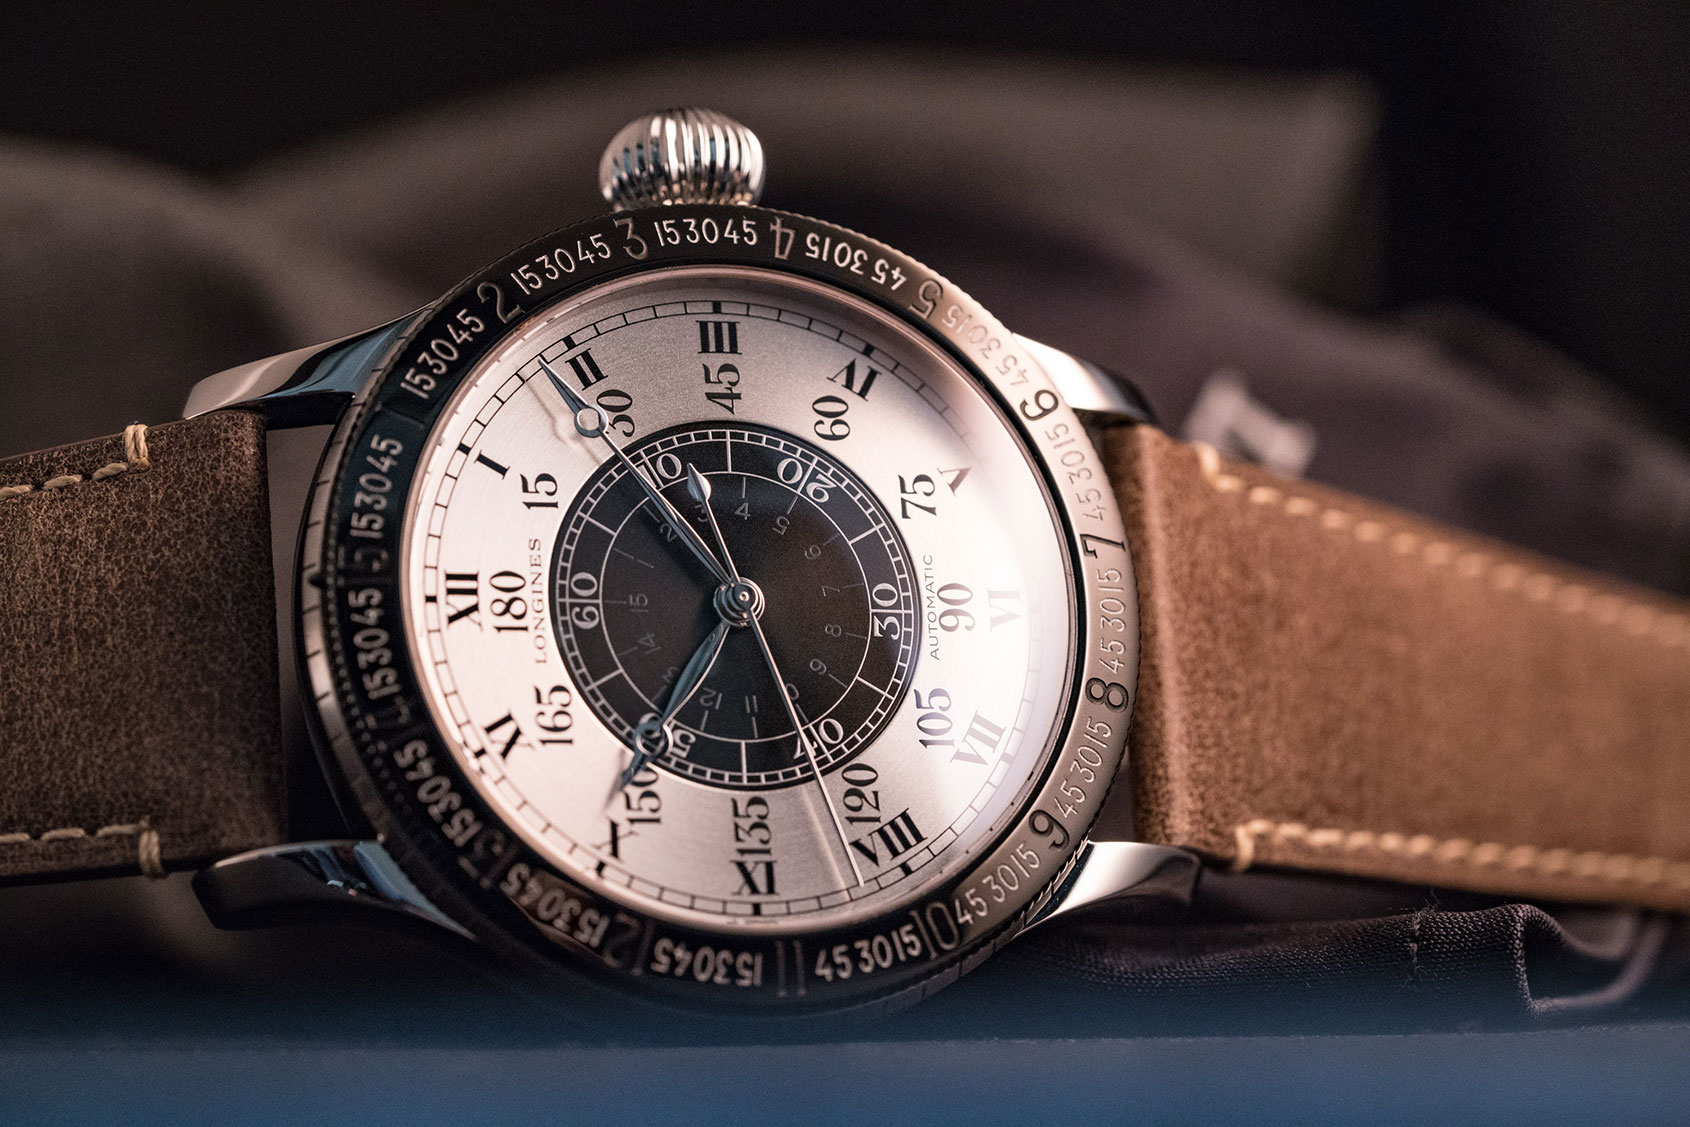 VIDEO: In the Adventurers & Explorers room at the Longines Museum, with a focus on the Lindbergh voyage